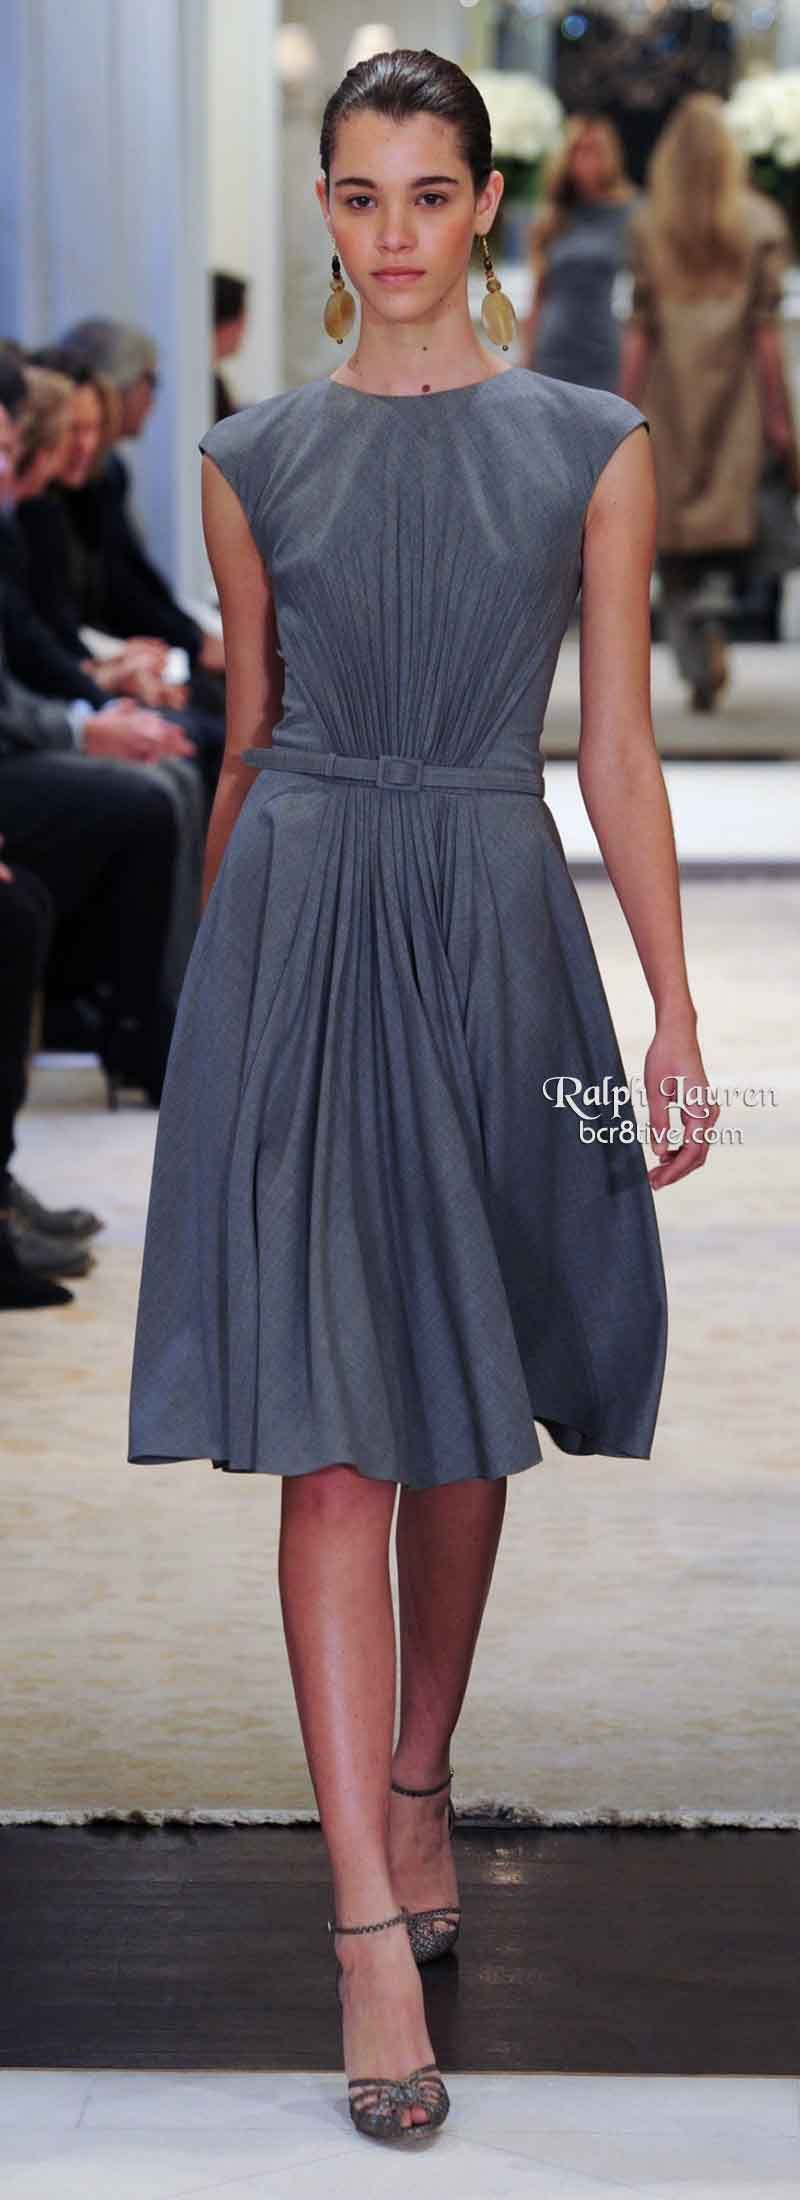 Ralph Lauren Pre Fall 2014 Gorgeous dress; would have to have a lower neckline for me, though.